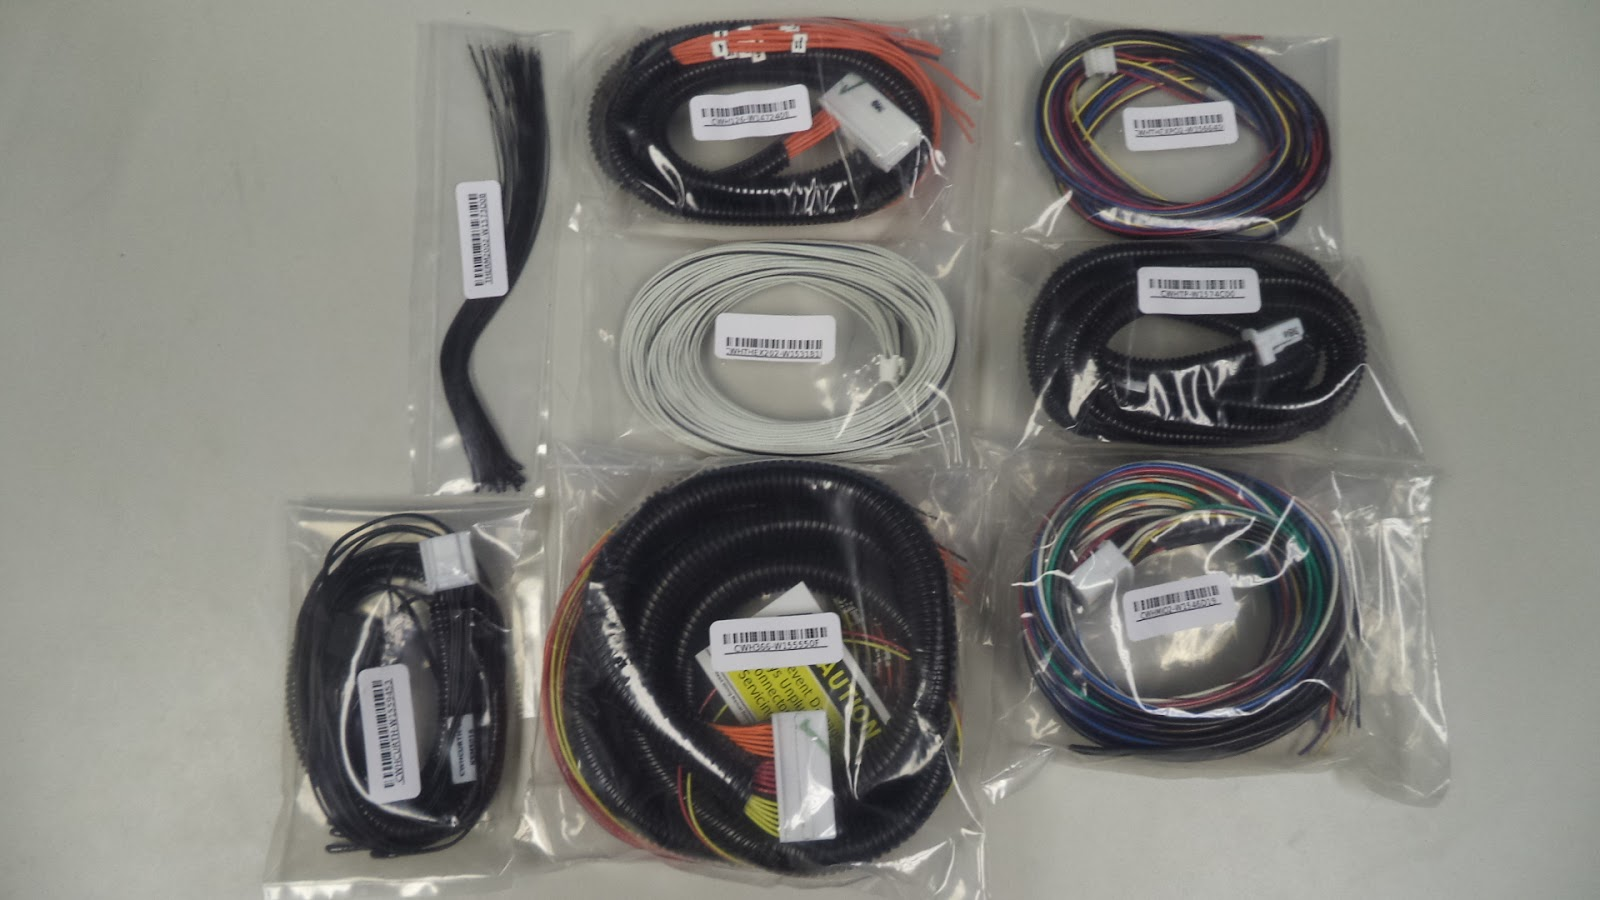 Williams Ev Bimmer 325i Orion Bms 48 Cell Kit Controller For Tesla Wire Harness Dsc05619 Of The Multiple Wiring Harnesses Provided